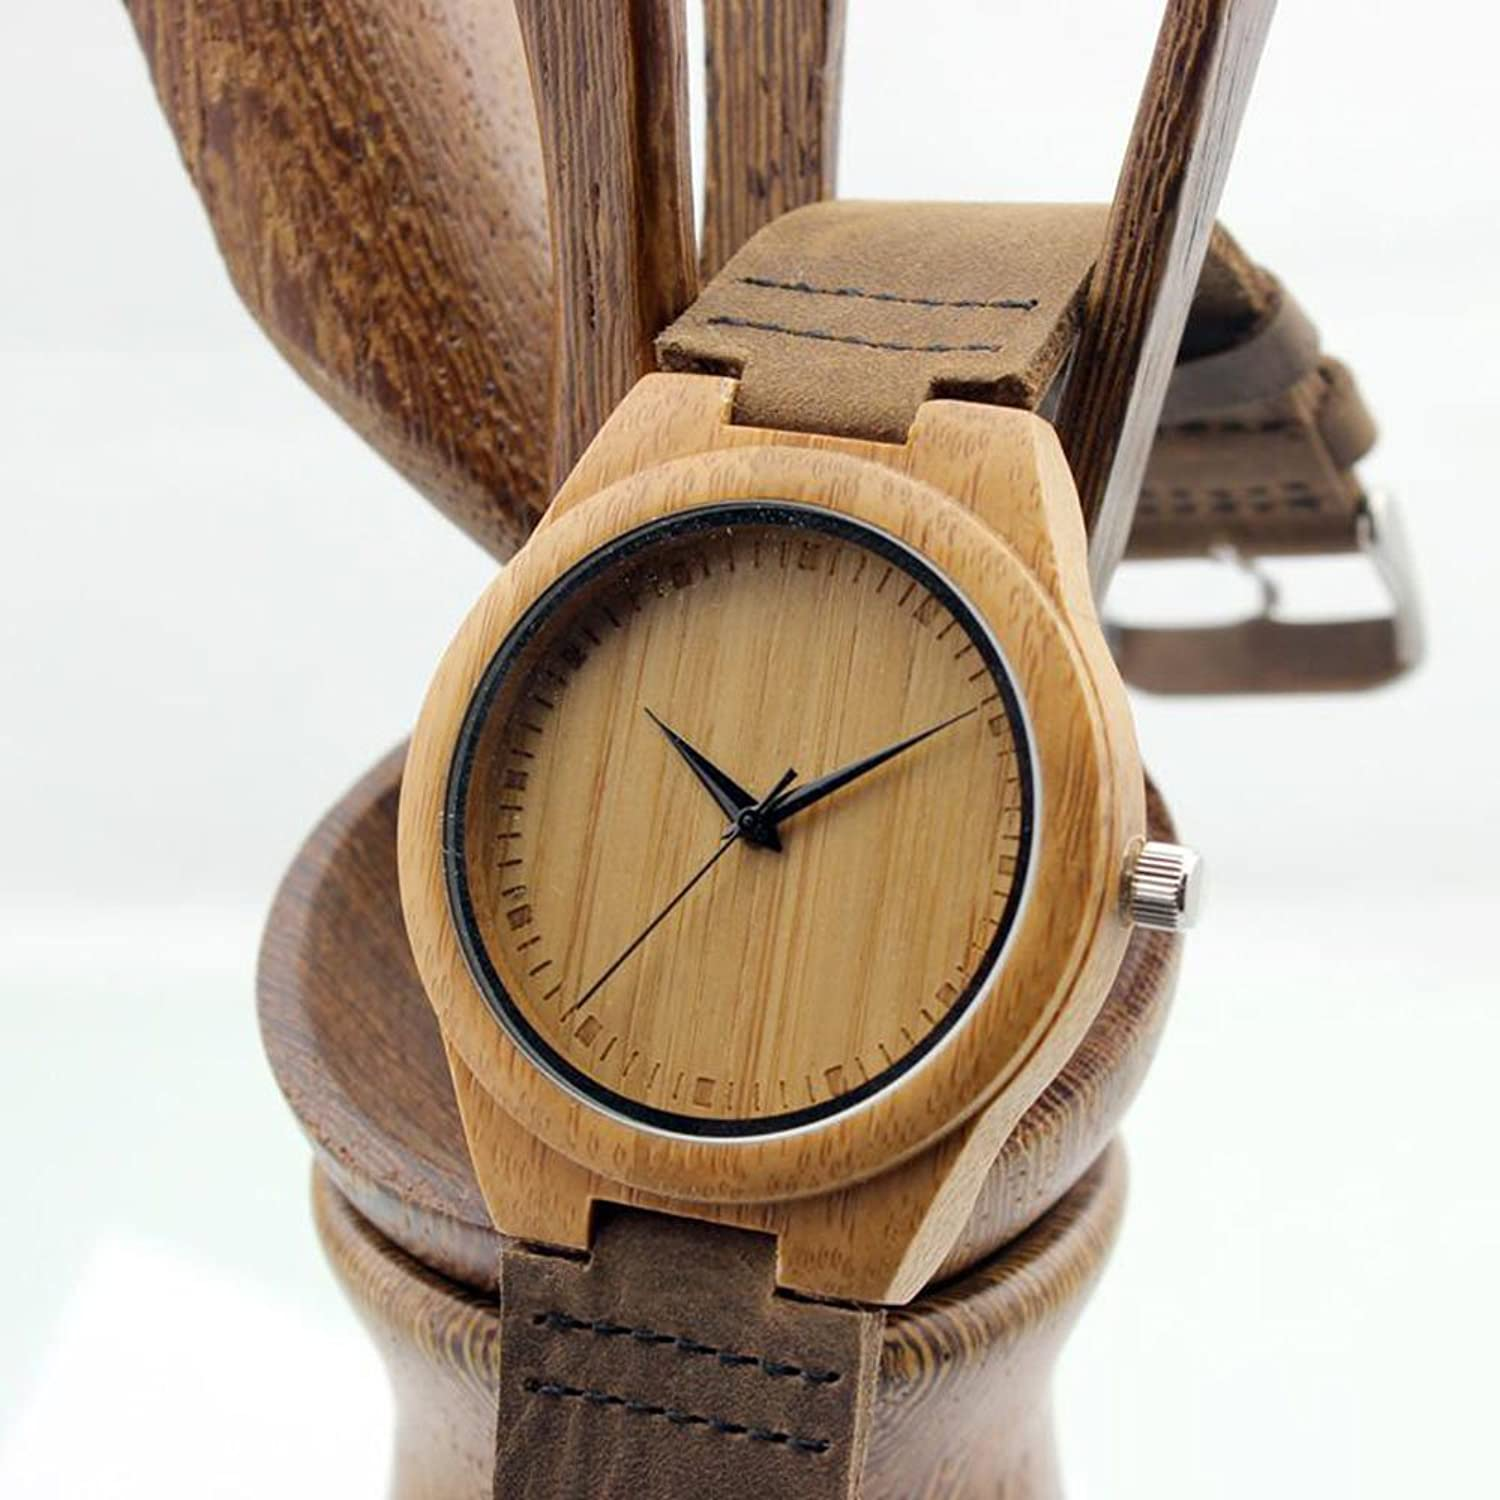 naturalist bamboo made wooden watches wearpanda from materials watch w and panda product products sunglasses sustainable image collection the